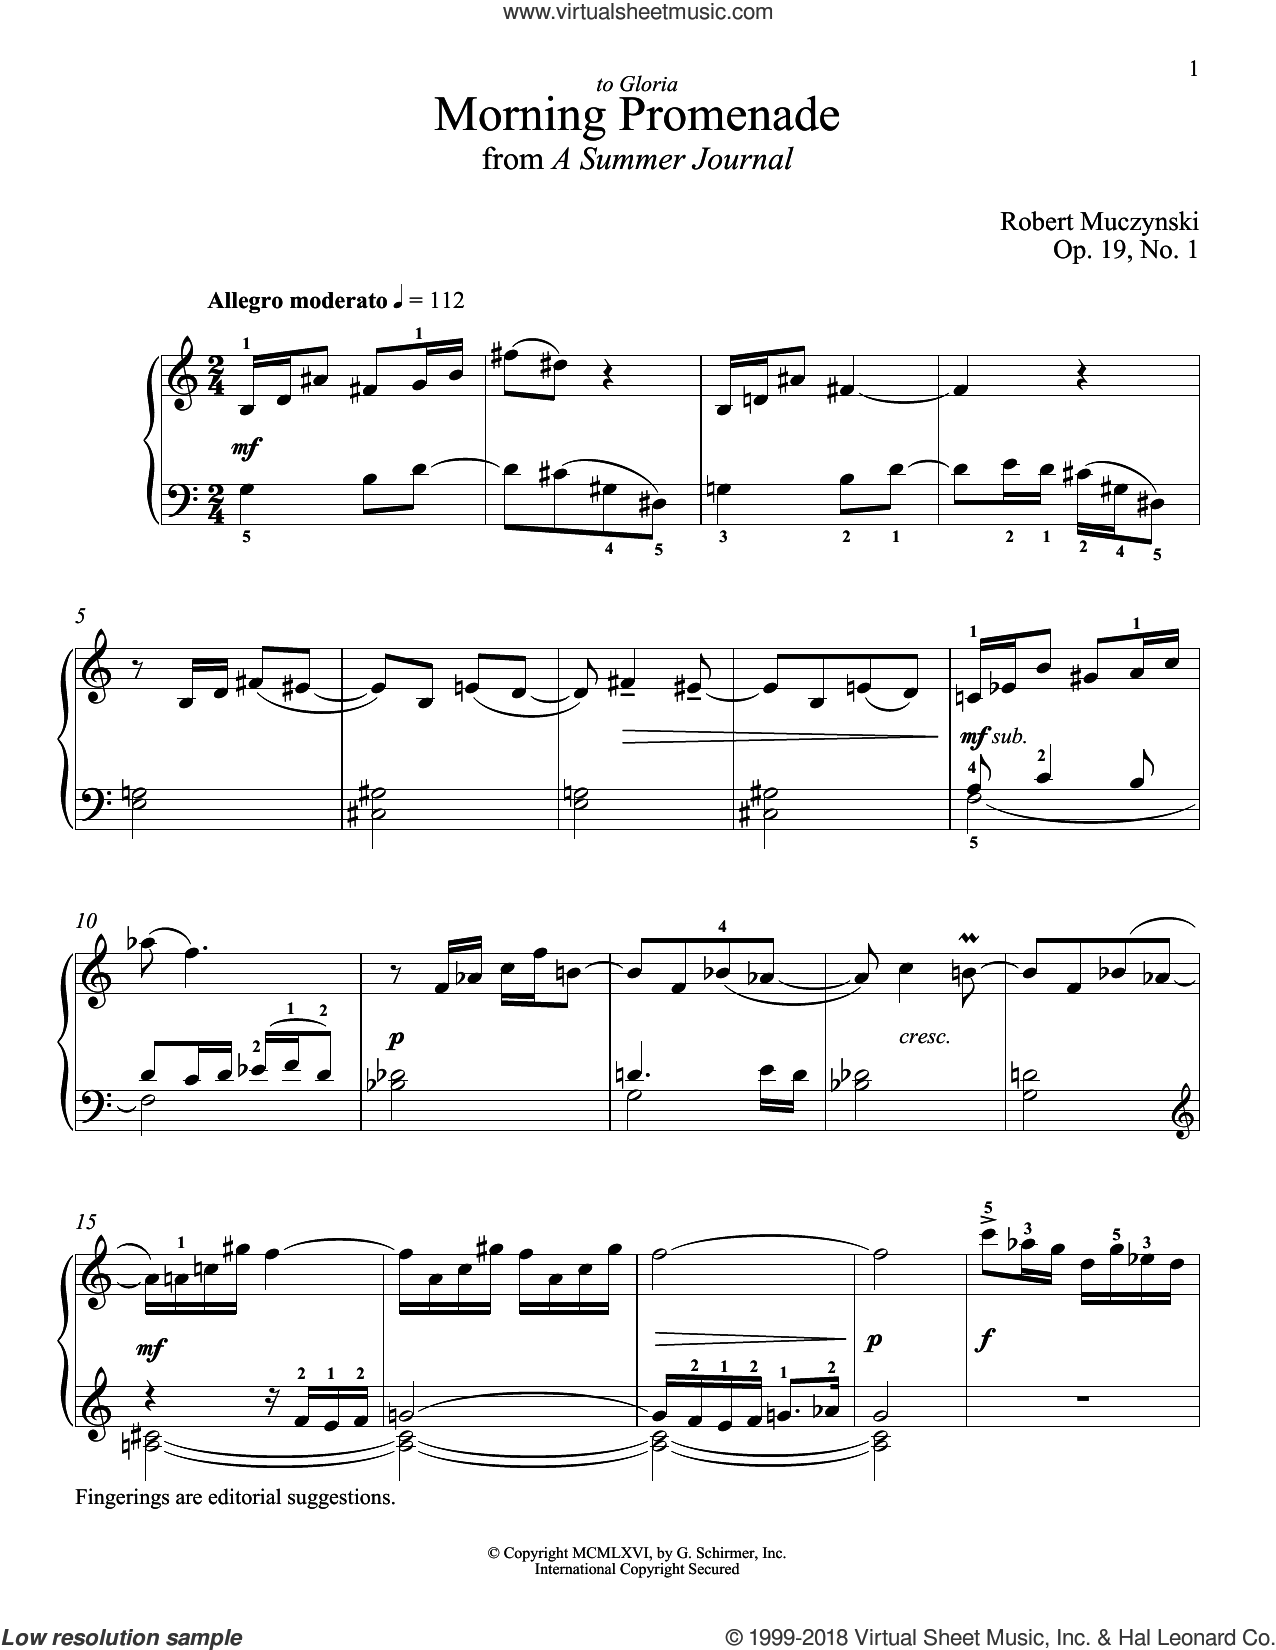 Morning Promenade sheet music for piano solo by Robert Muczynski and Richard Walters, classical score, intermediate skill level